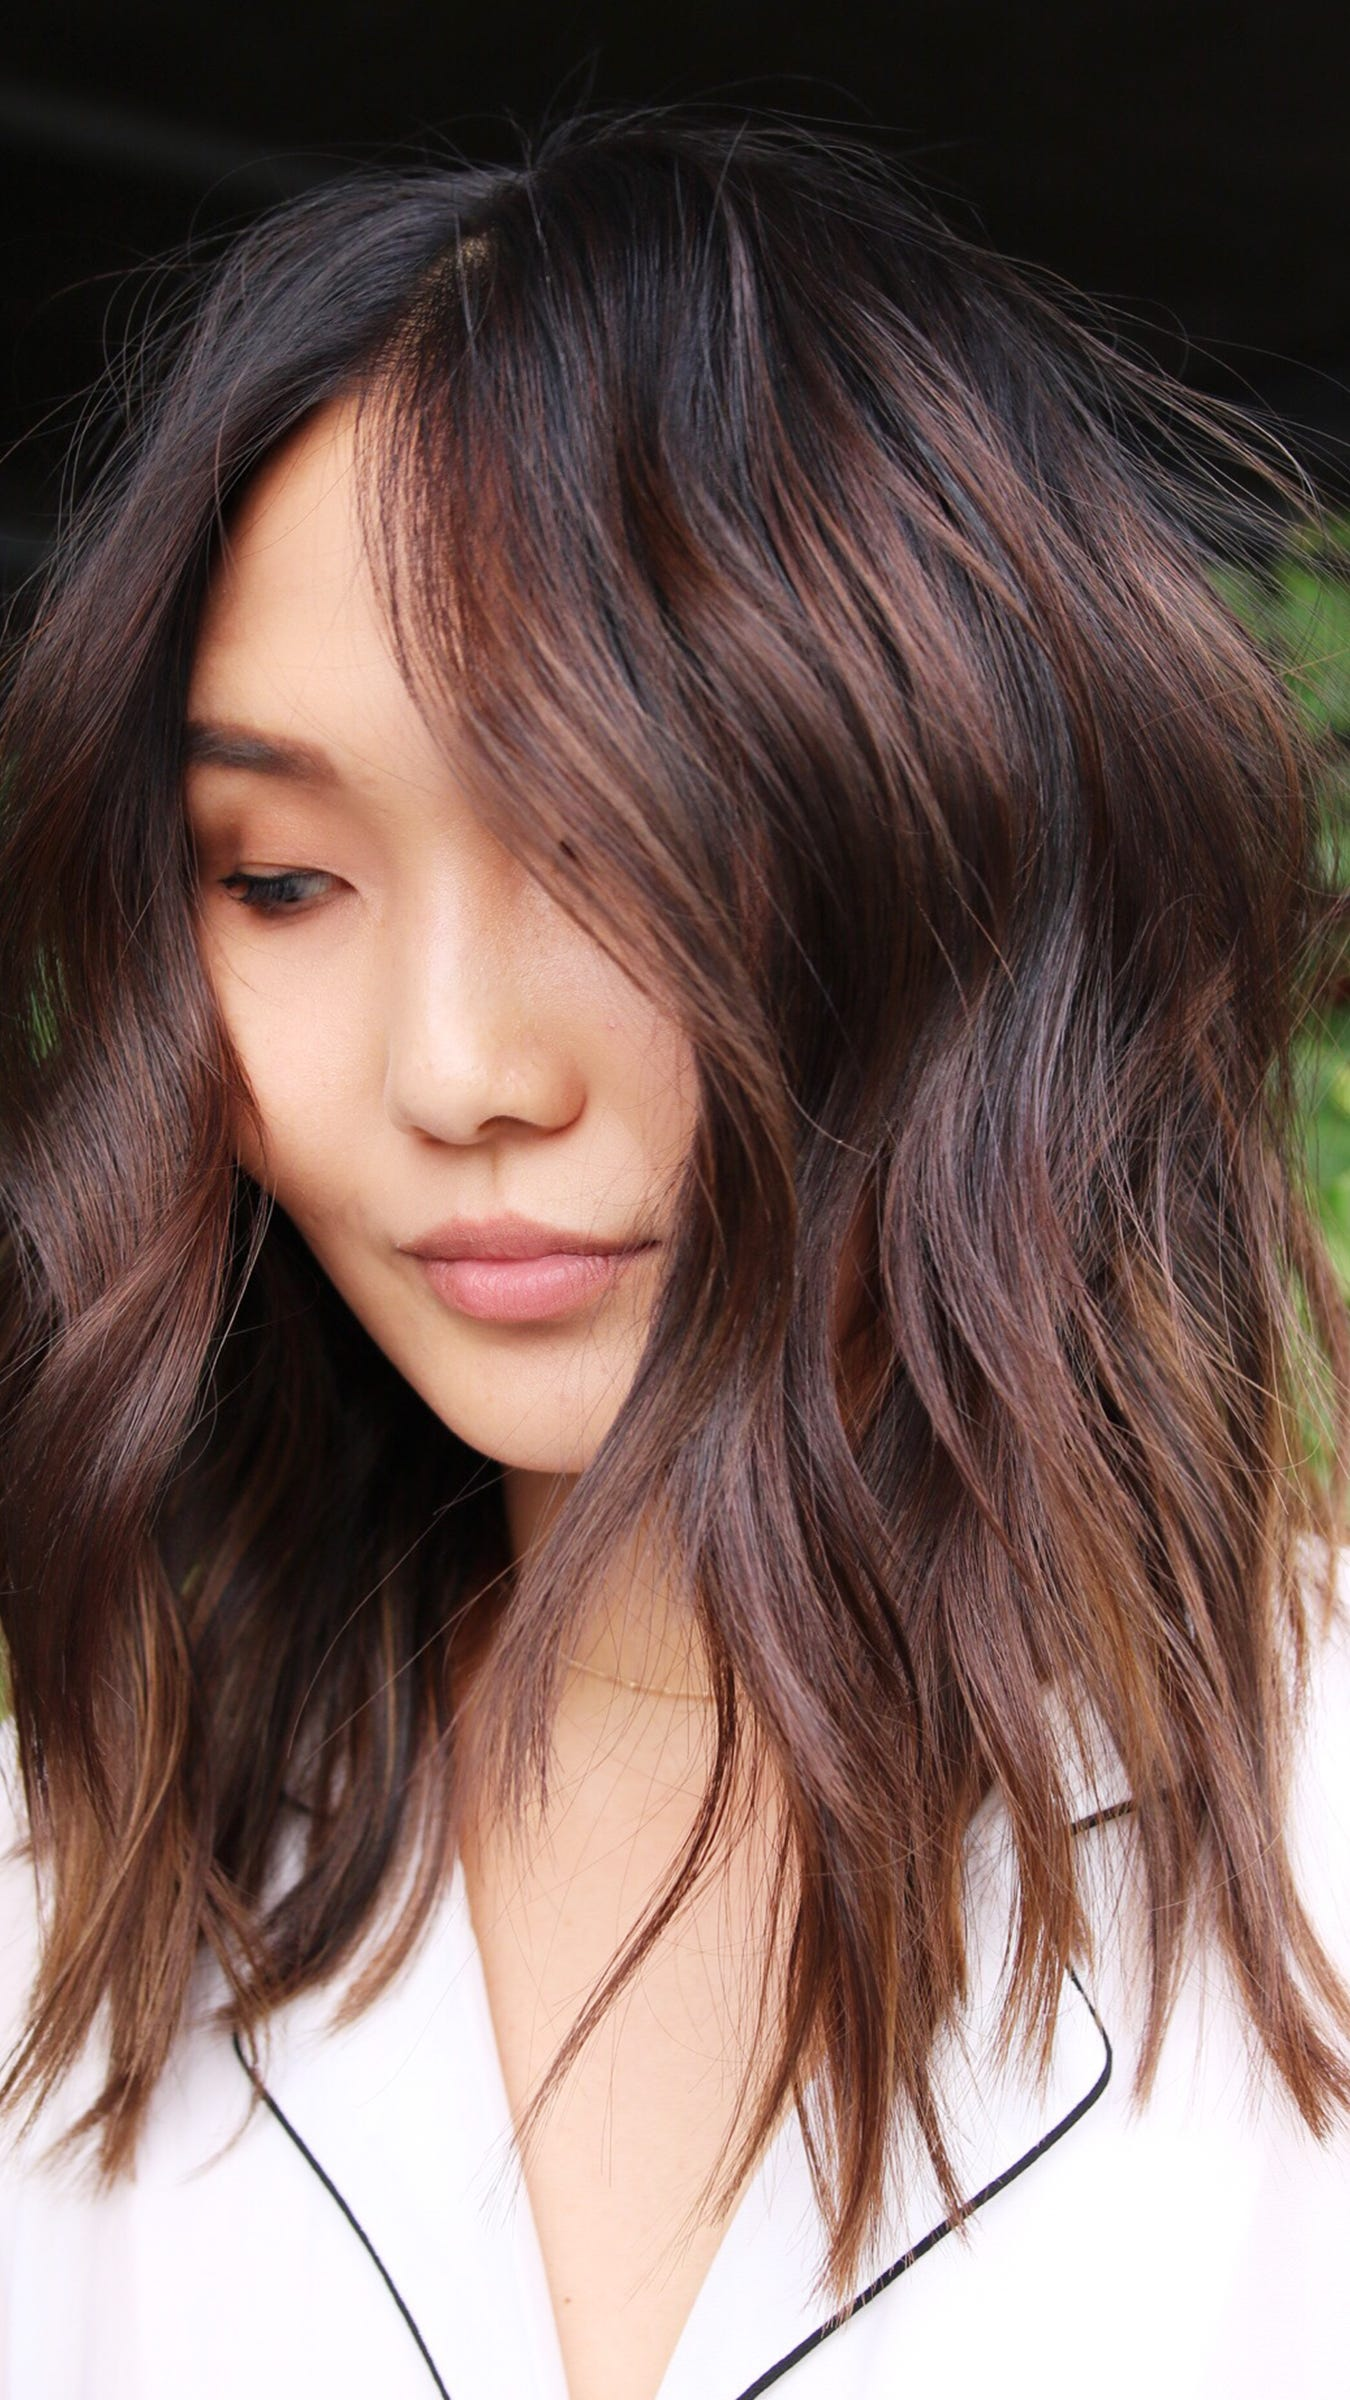 Hair color 2019 trends asian dating